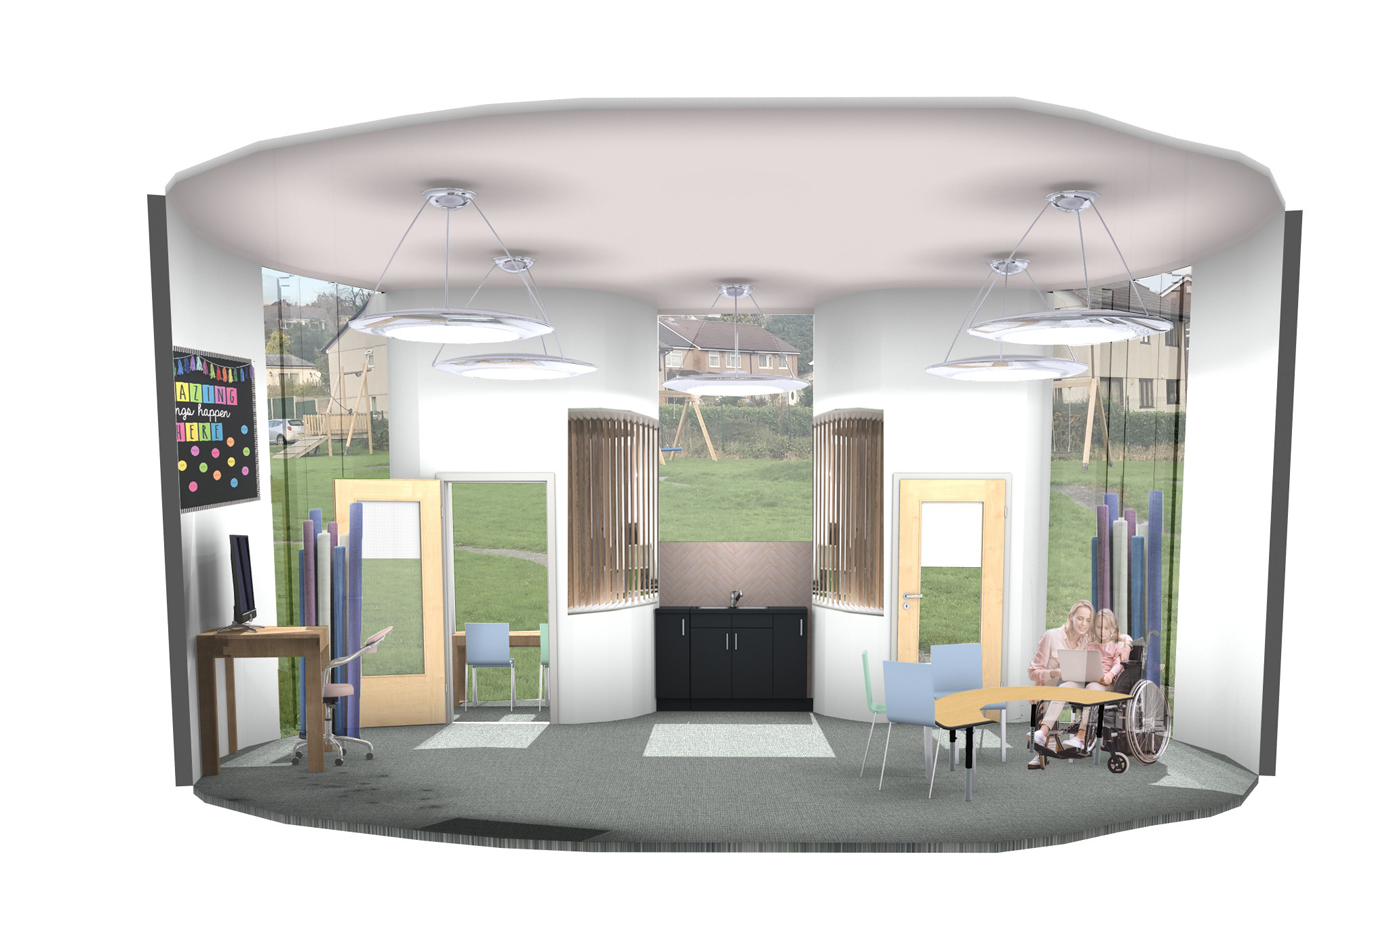 Redesigning Special Educational Needs Schools focusing on User Well Being (Classroom)